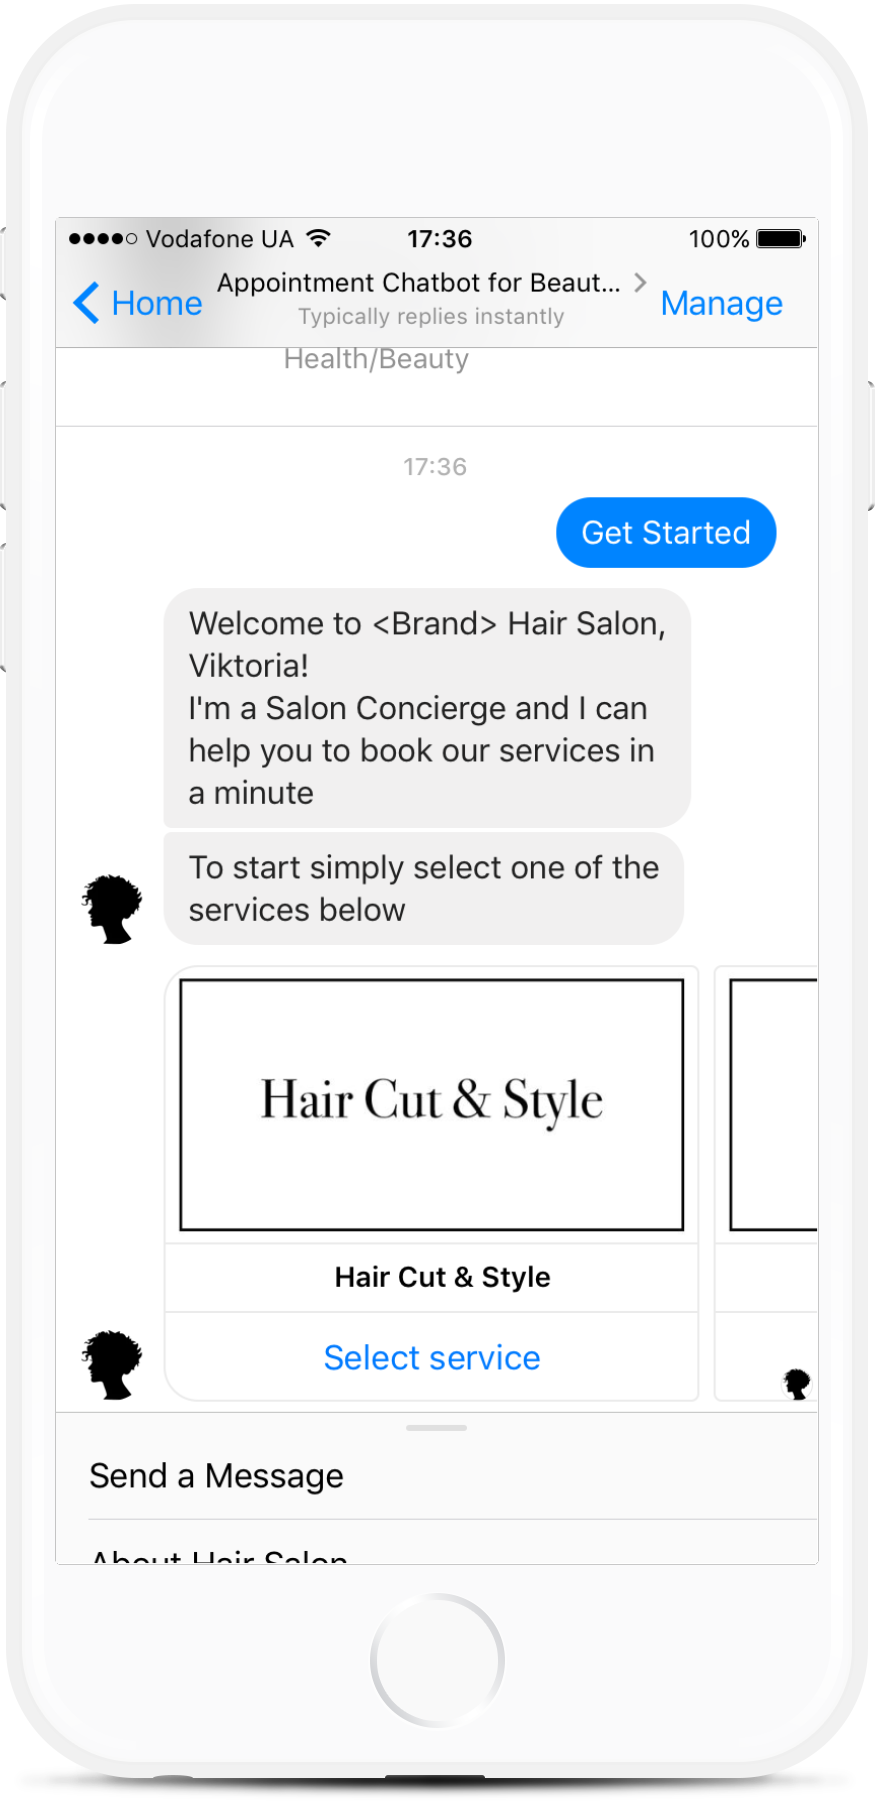 Facebook Appointment Chatbot for Hair Salon from $16/mo   #messenger #bottemplates #bots #chatbots #aibots #fbmessenger #botmakers